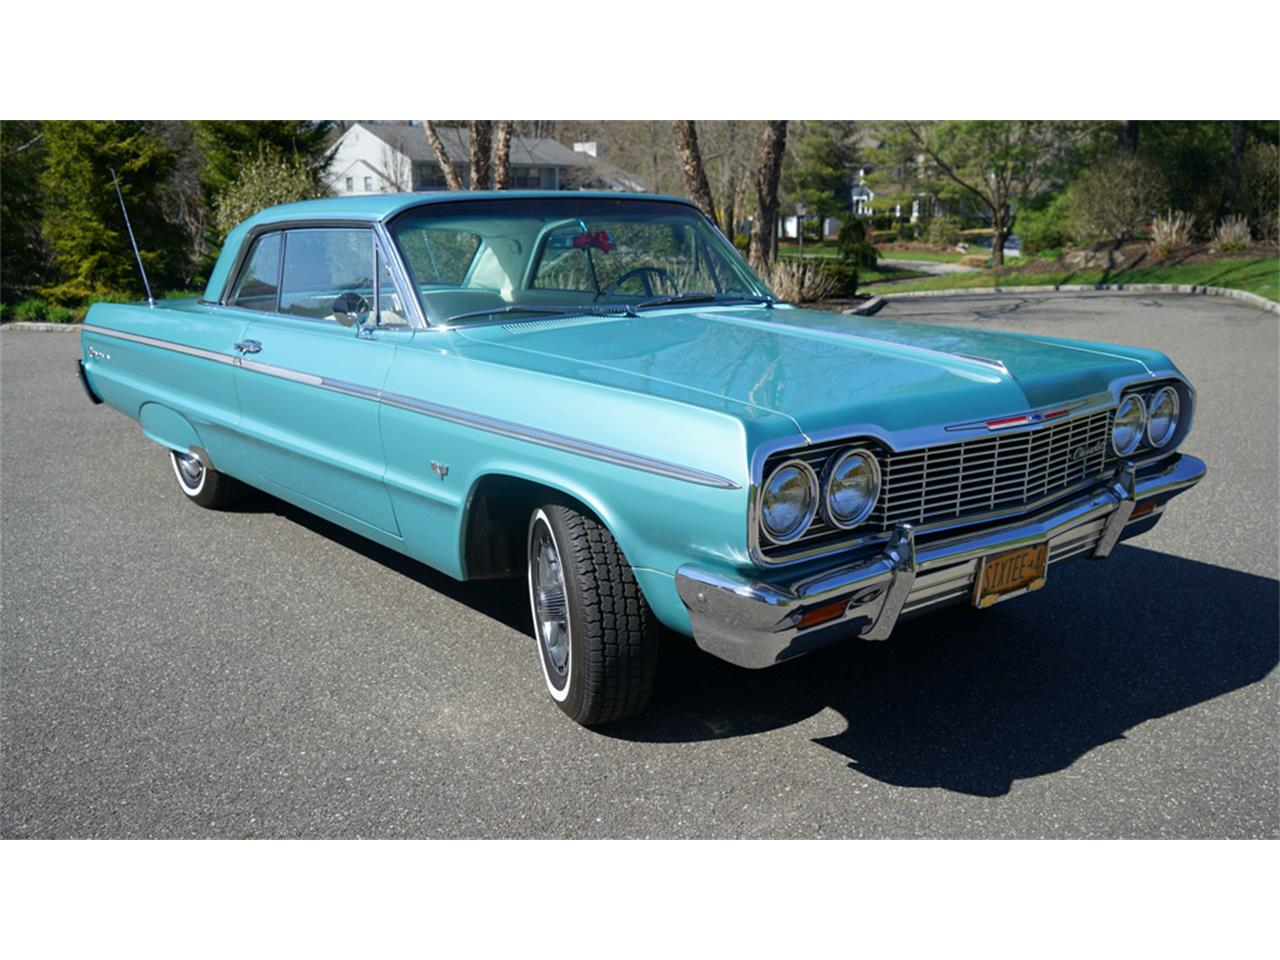 For Sale: 1964 Chevrolet Impala SS in Old Bethpage, New York